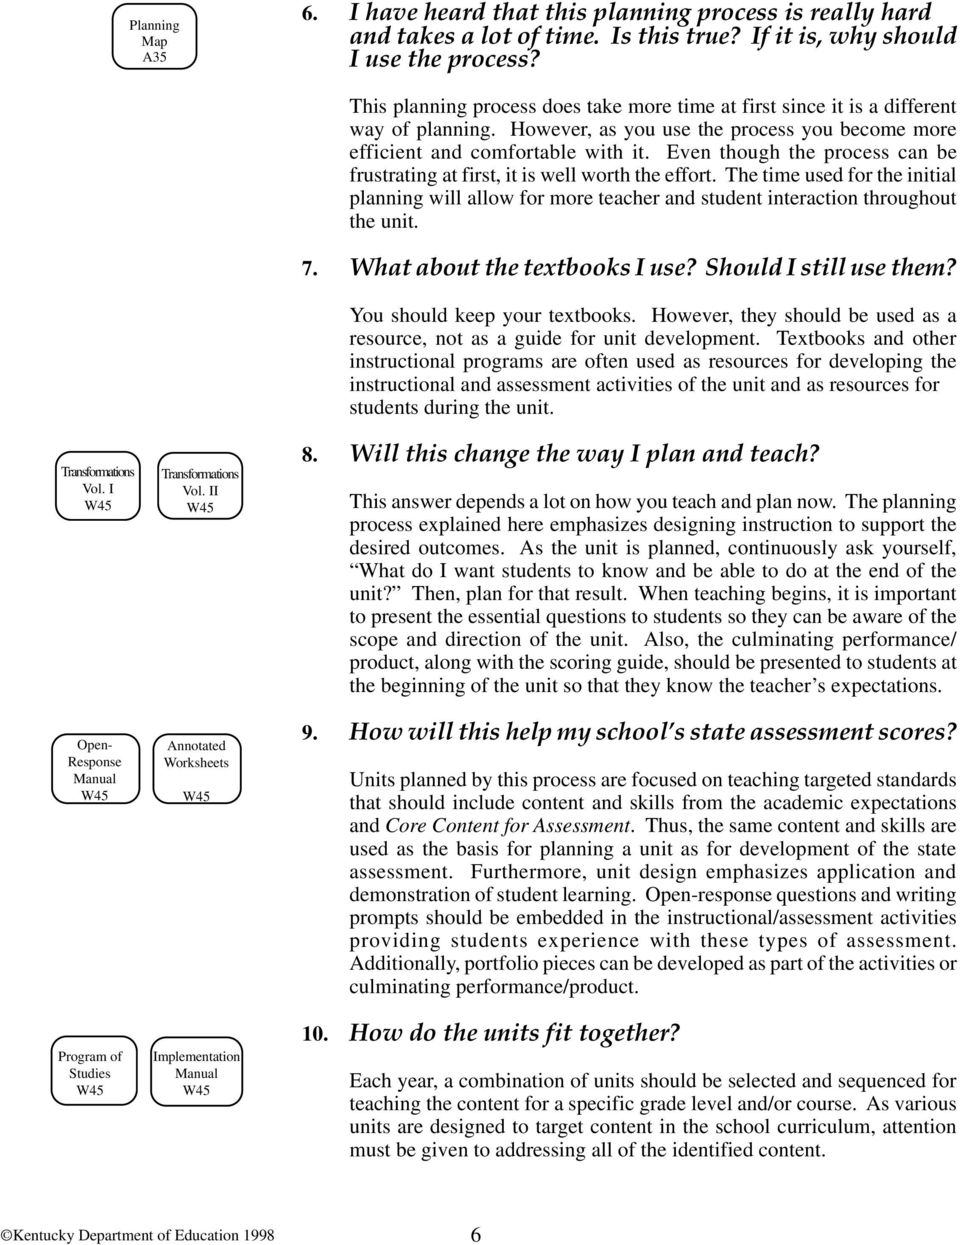 II Annotated Worksheets Implementation Manual This planning process does take more time at first since it is a different way of planning.